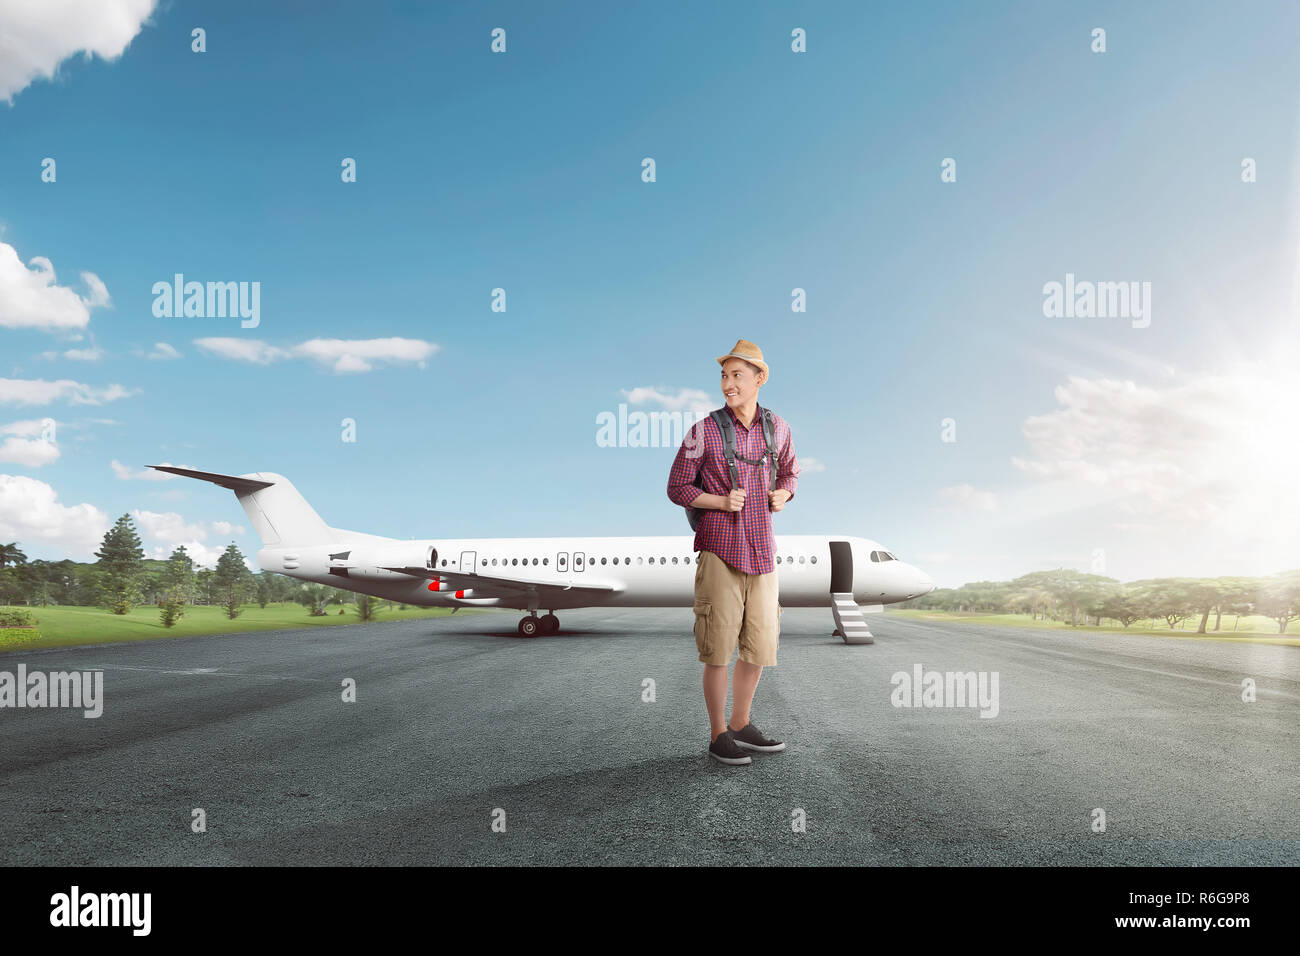 Handsome asian traveler with backpack ready to depart - Stock Image